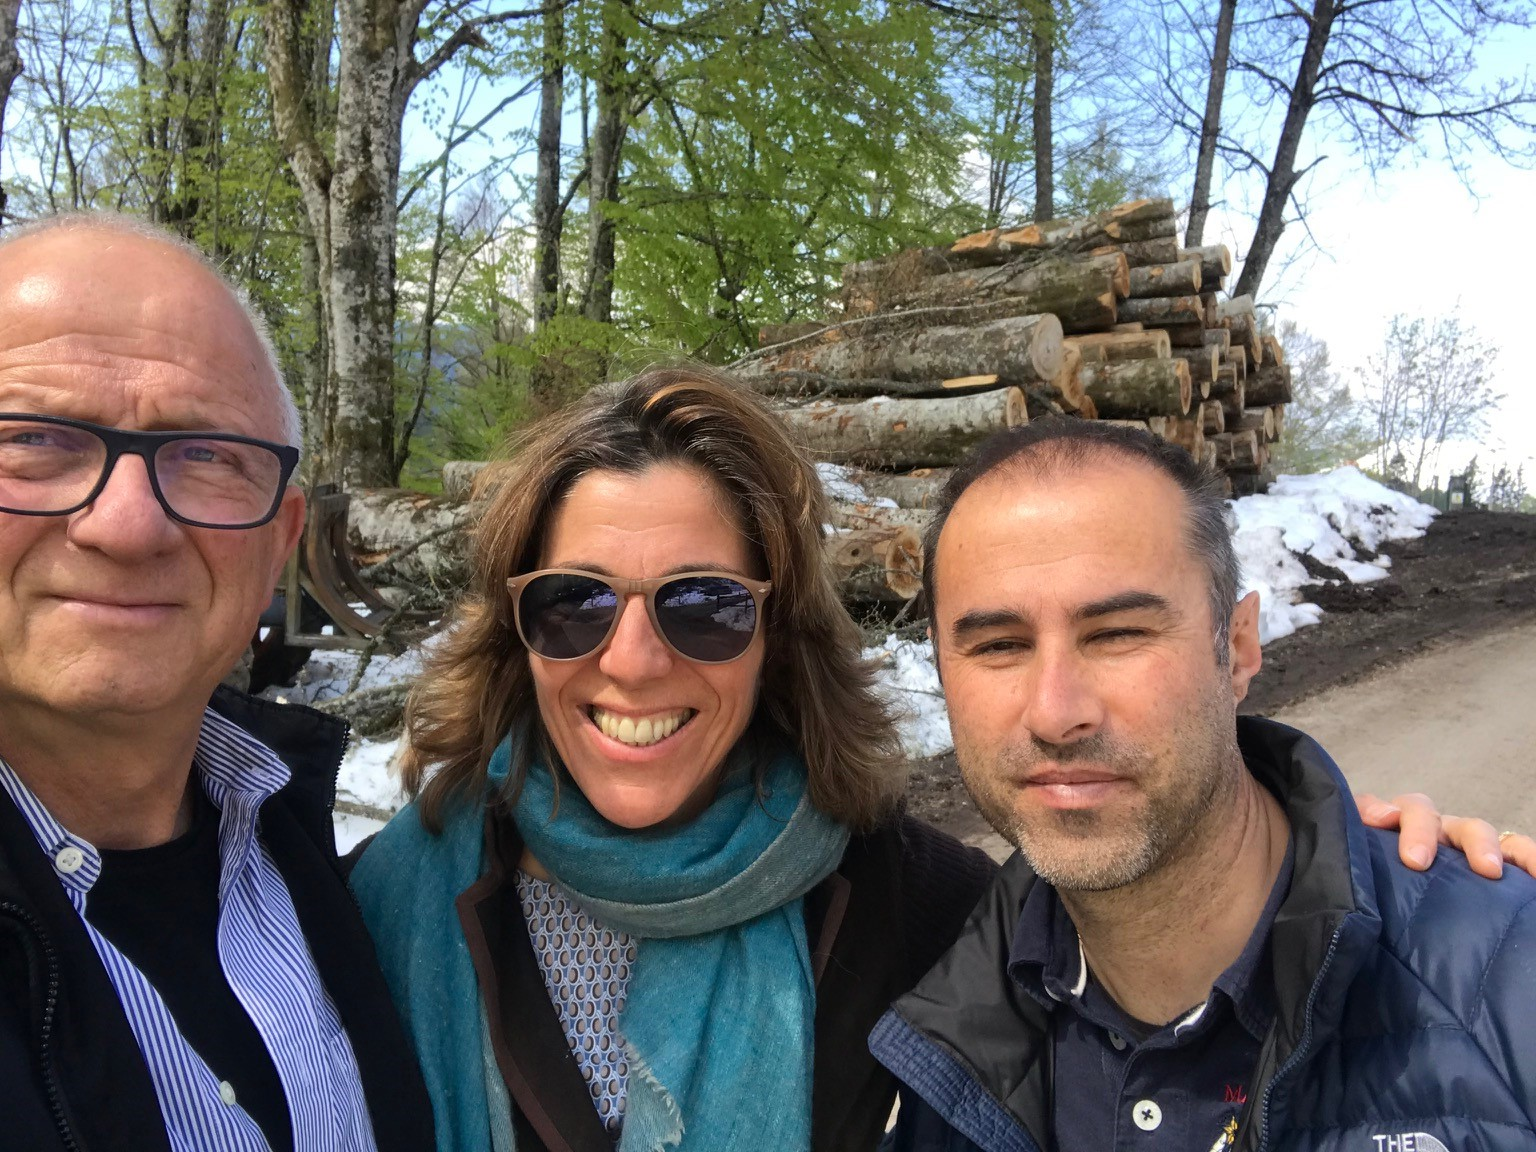 - - at Cansiglio forest - site visit d .